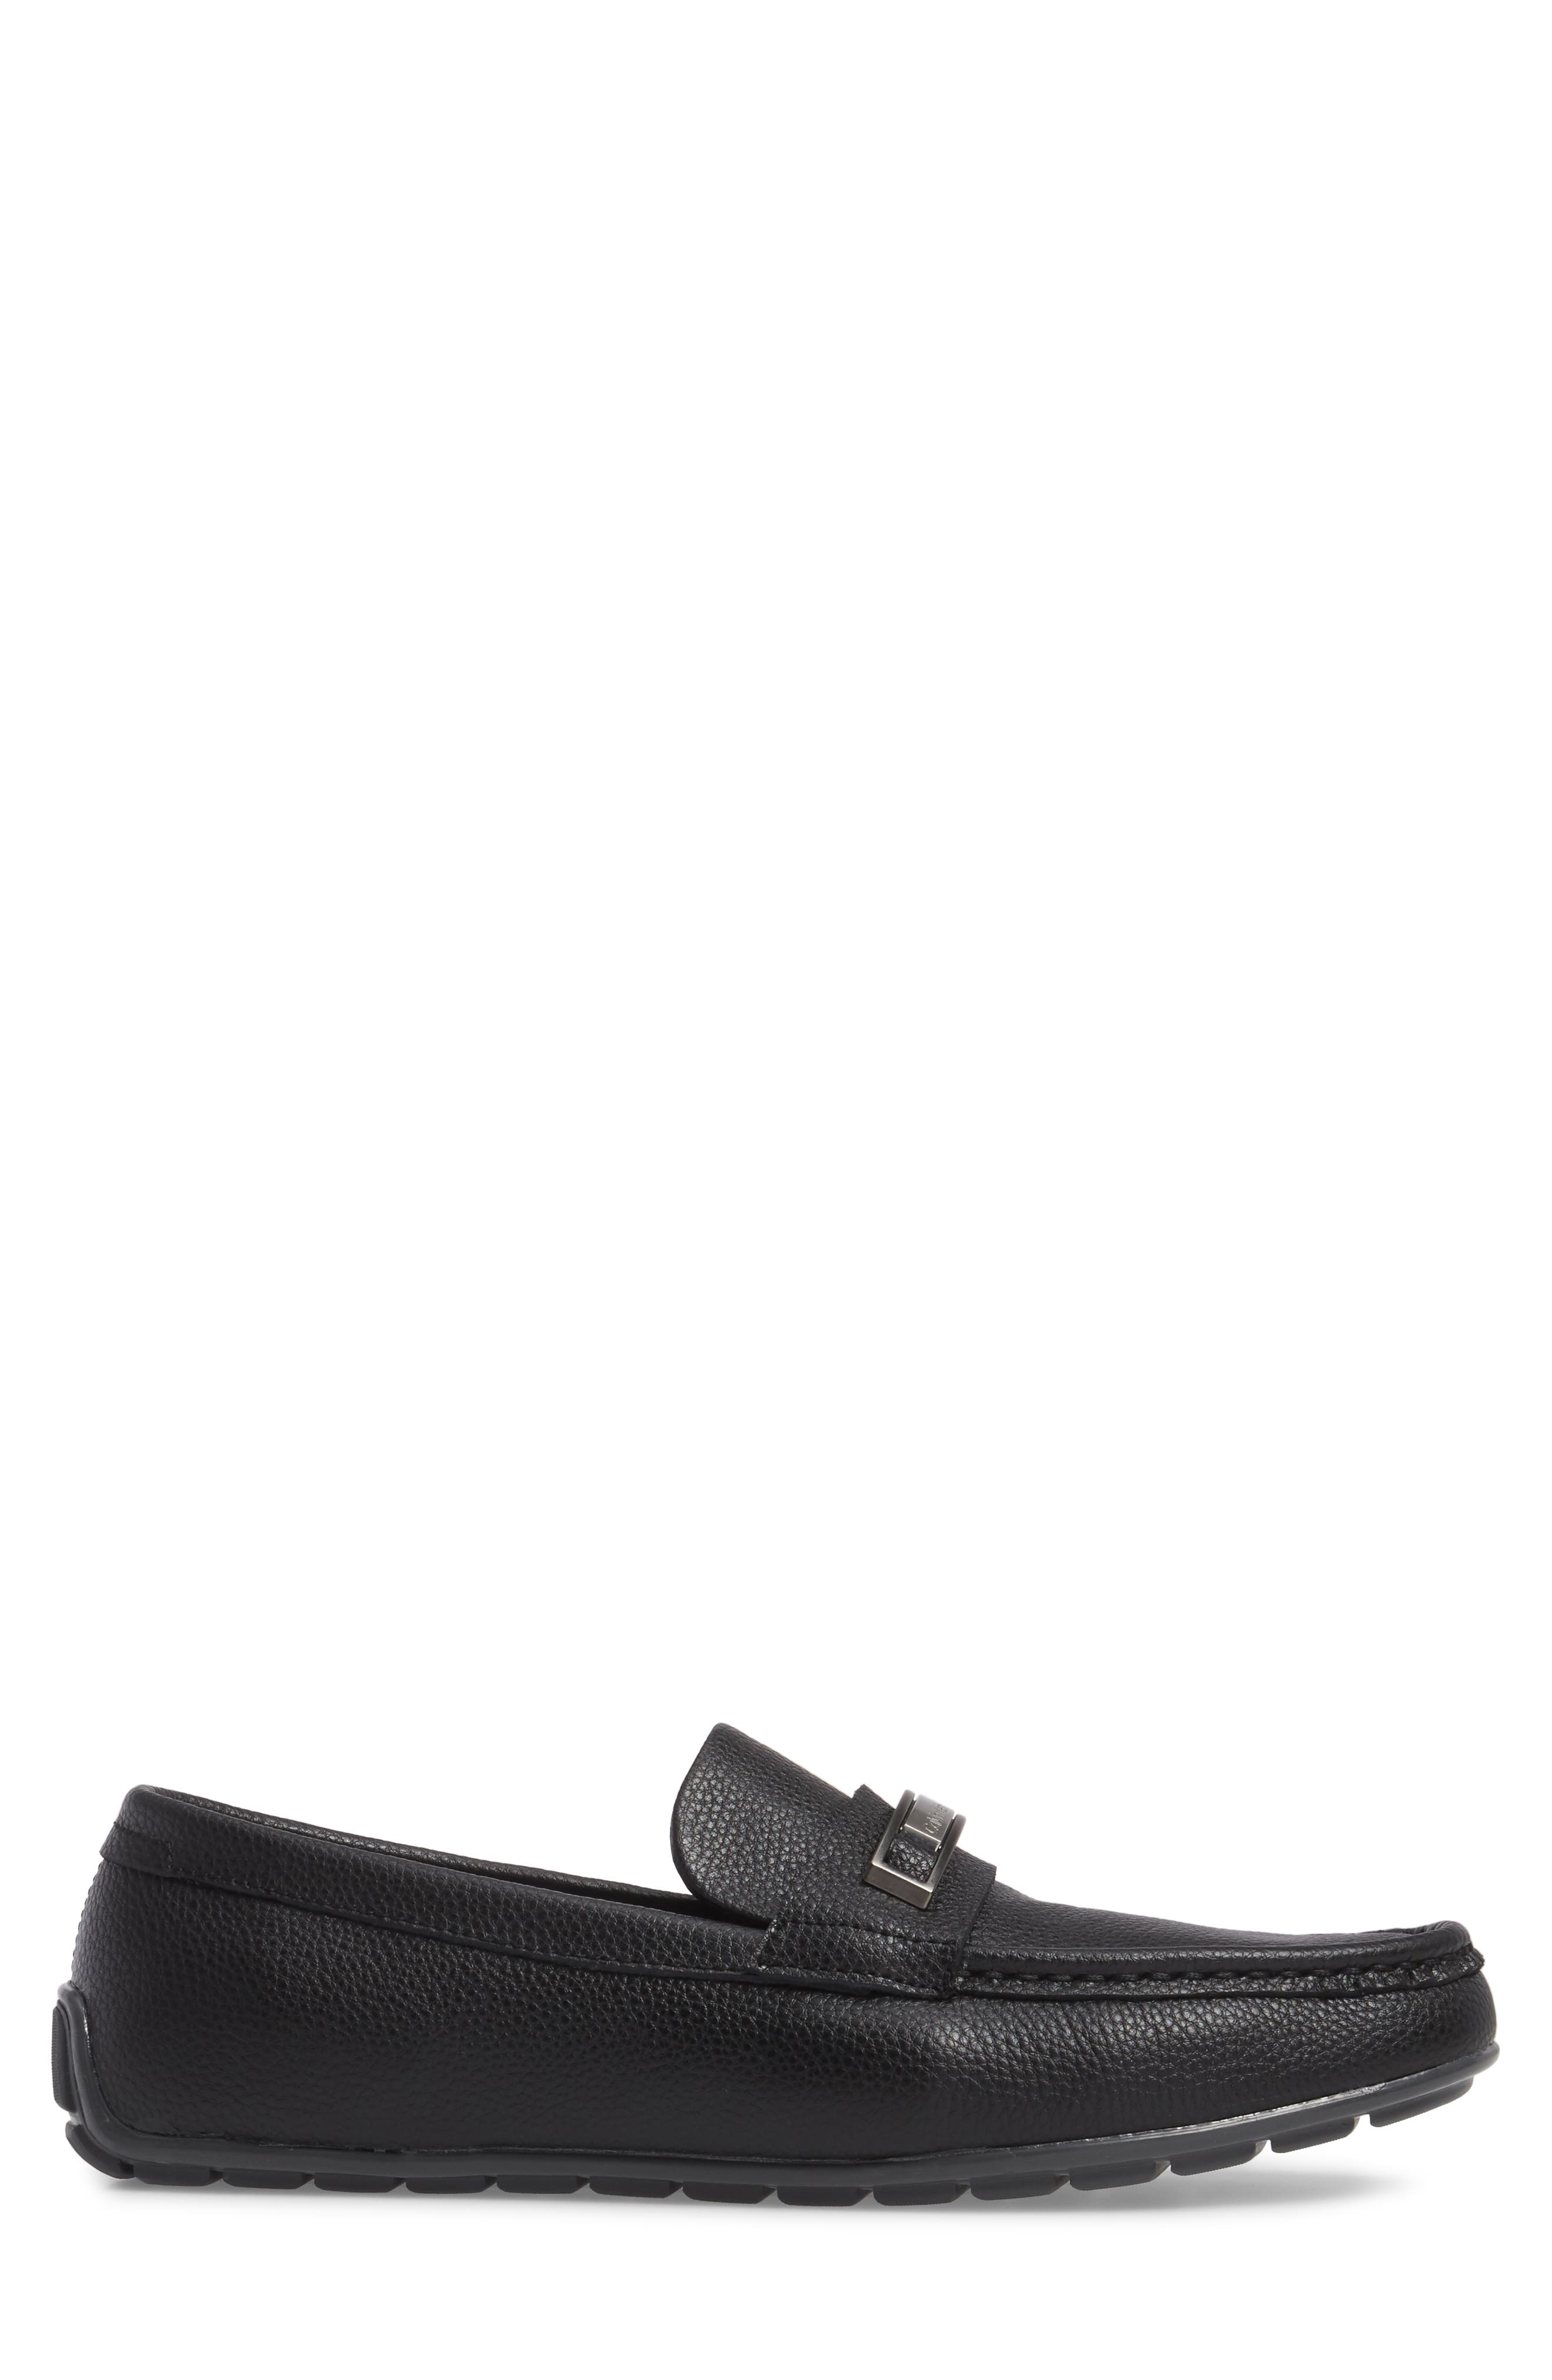 Irving Driving Loafer,                             Alternate thumbnail 9, color,